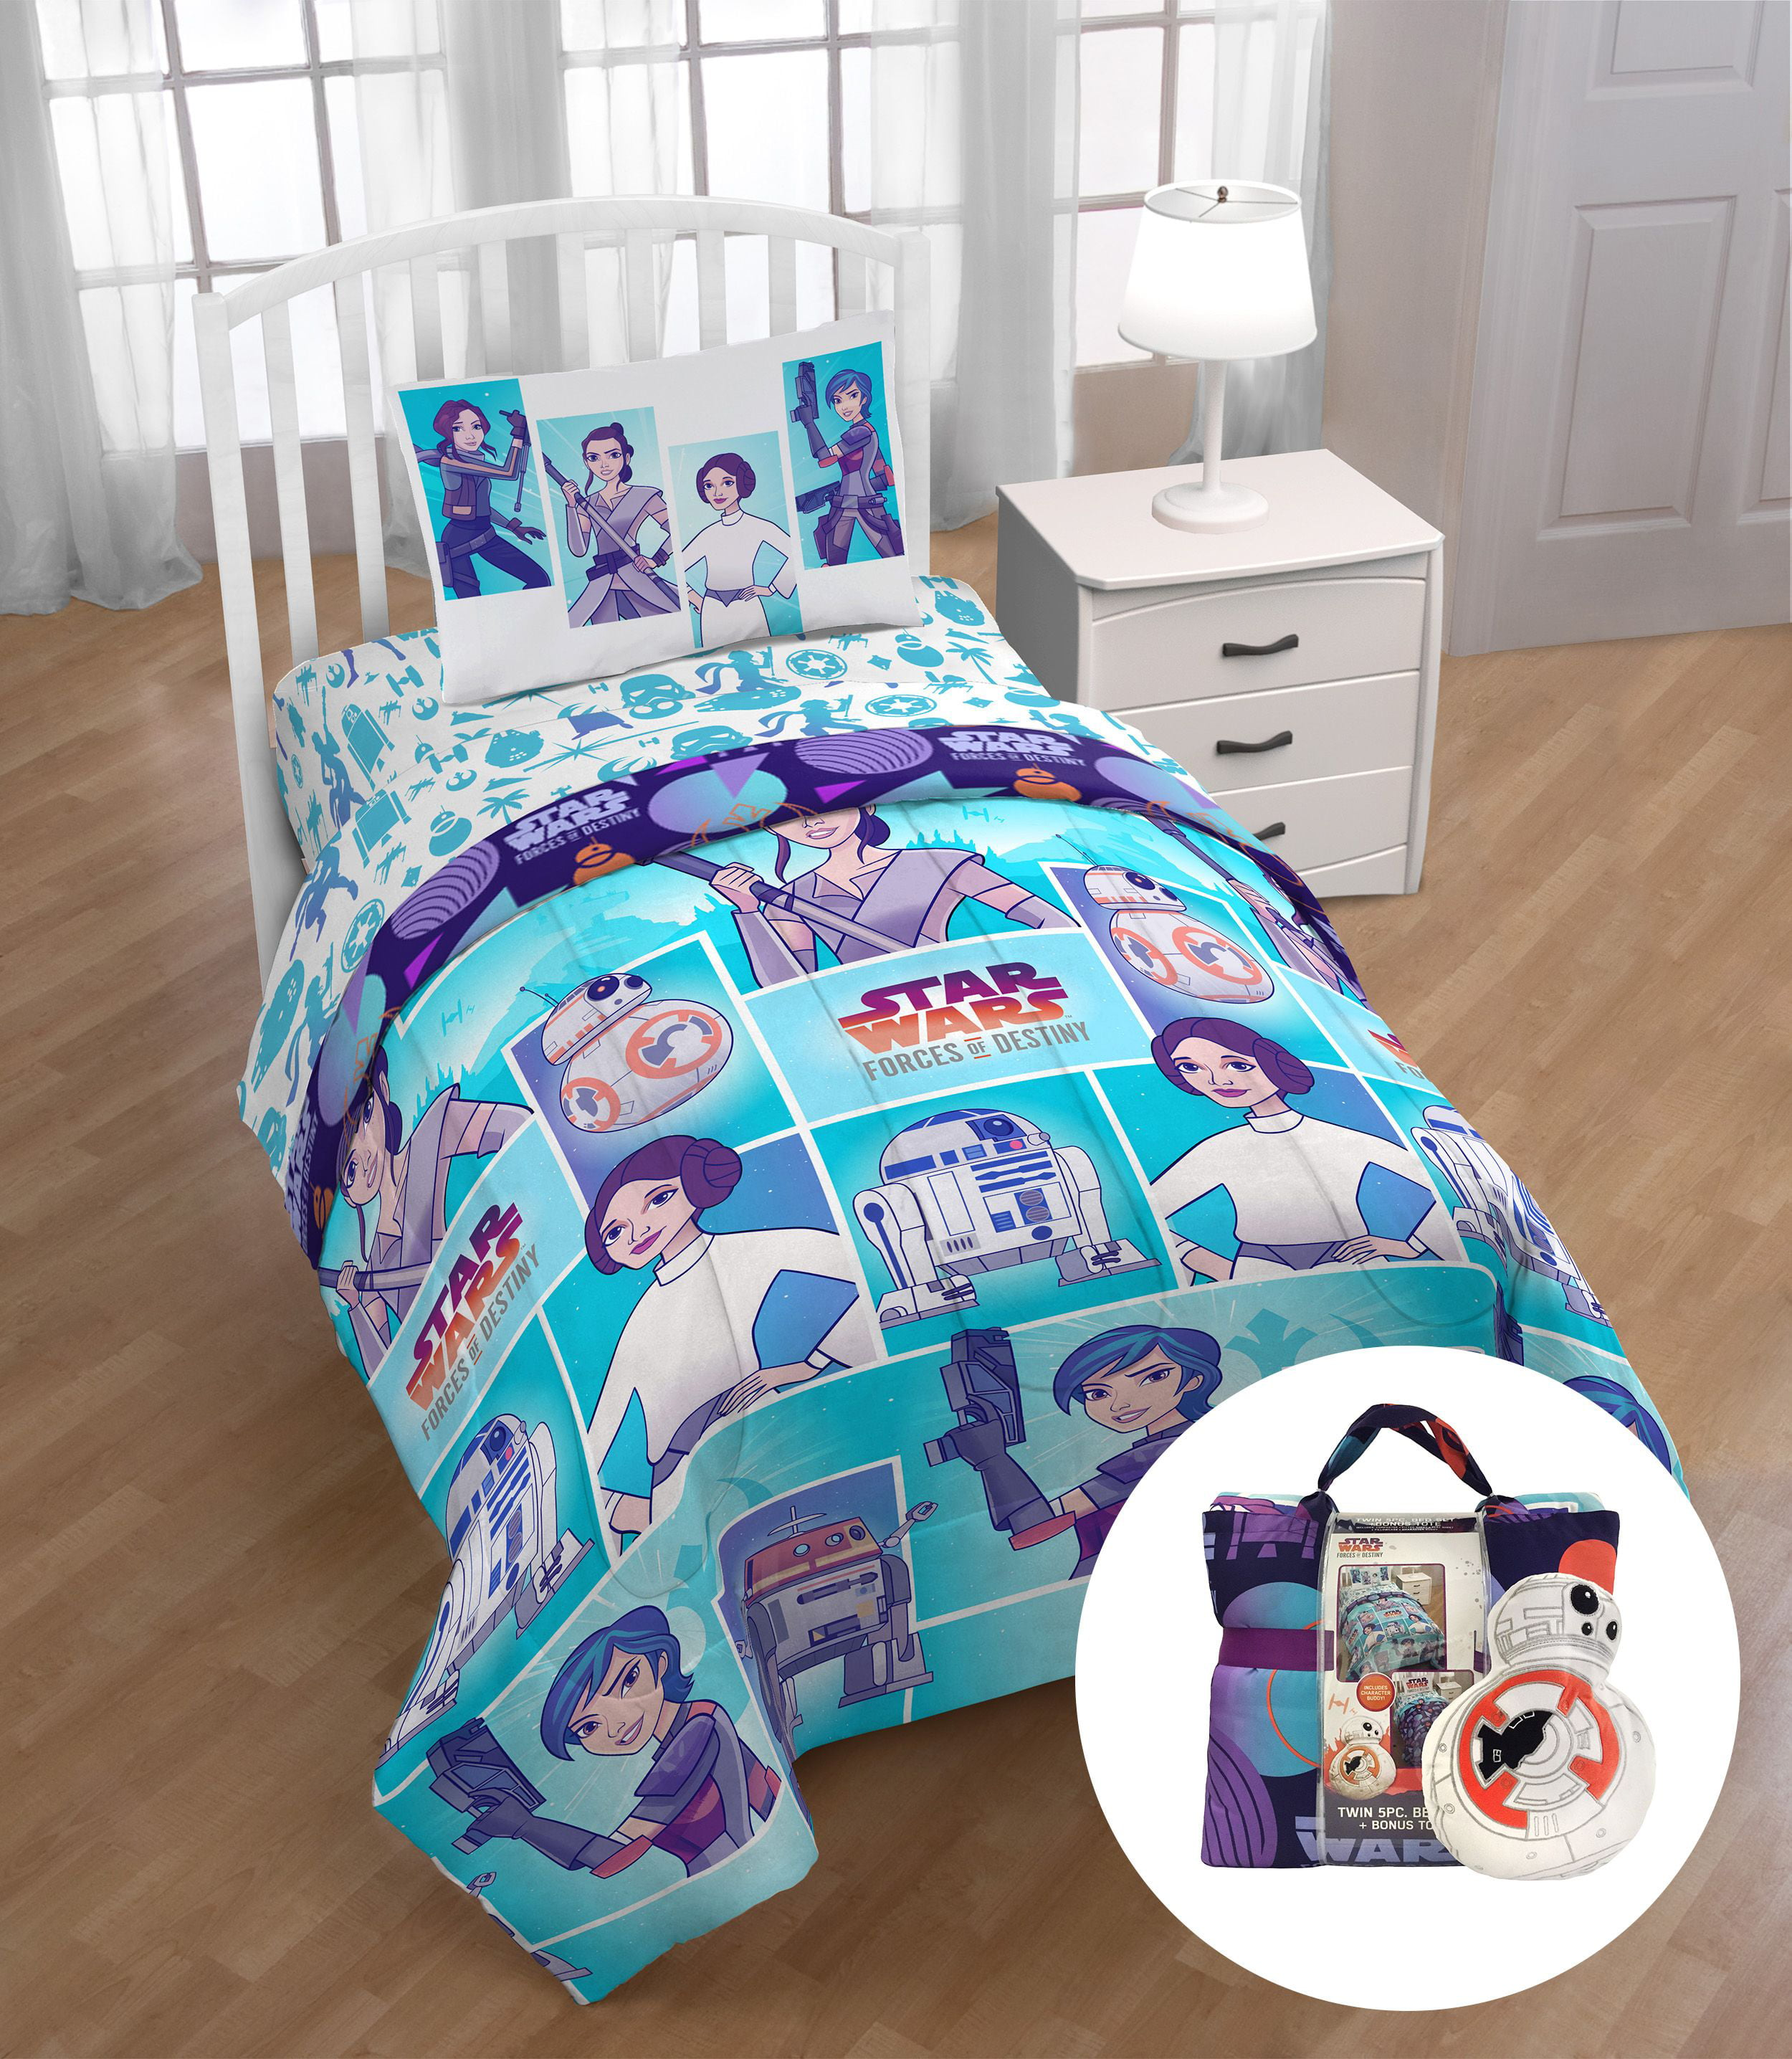 Star Wars Forces Of Destiny Twin Bed Set With Bonus Tote